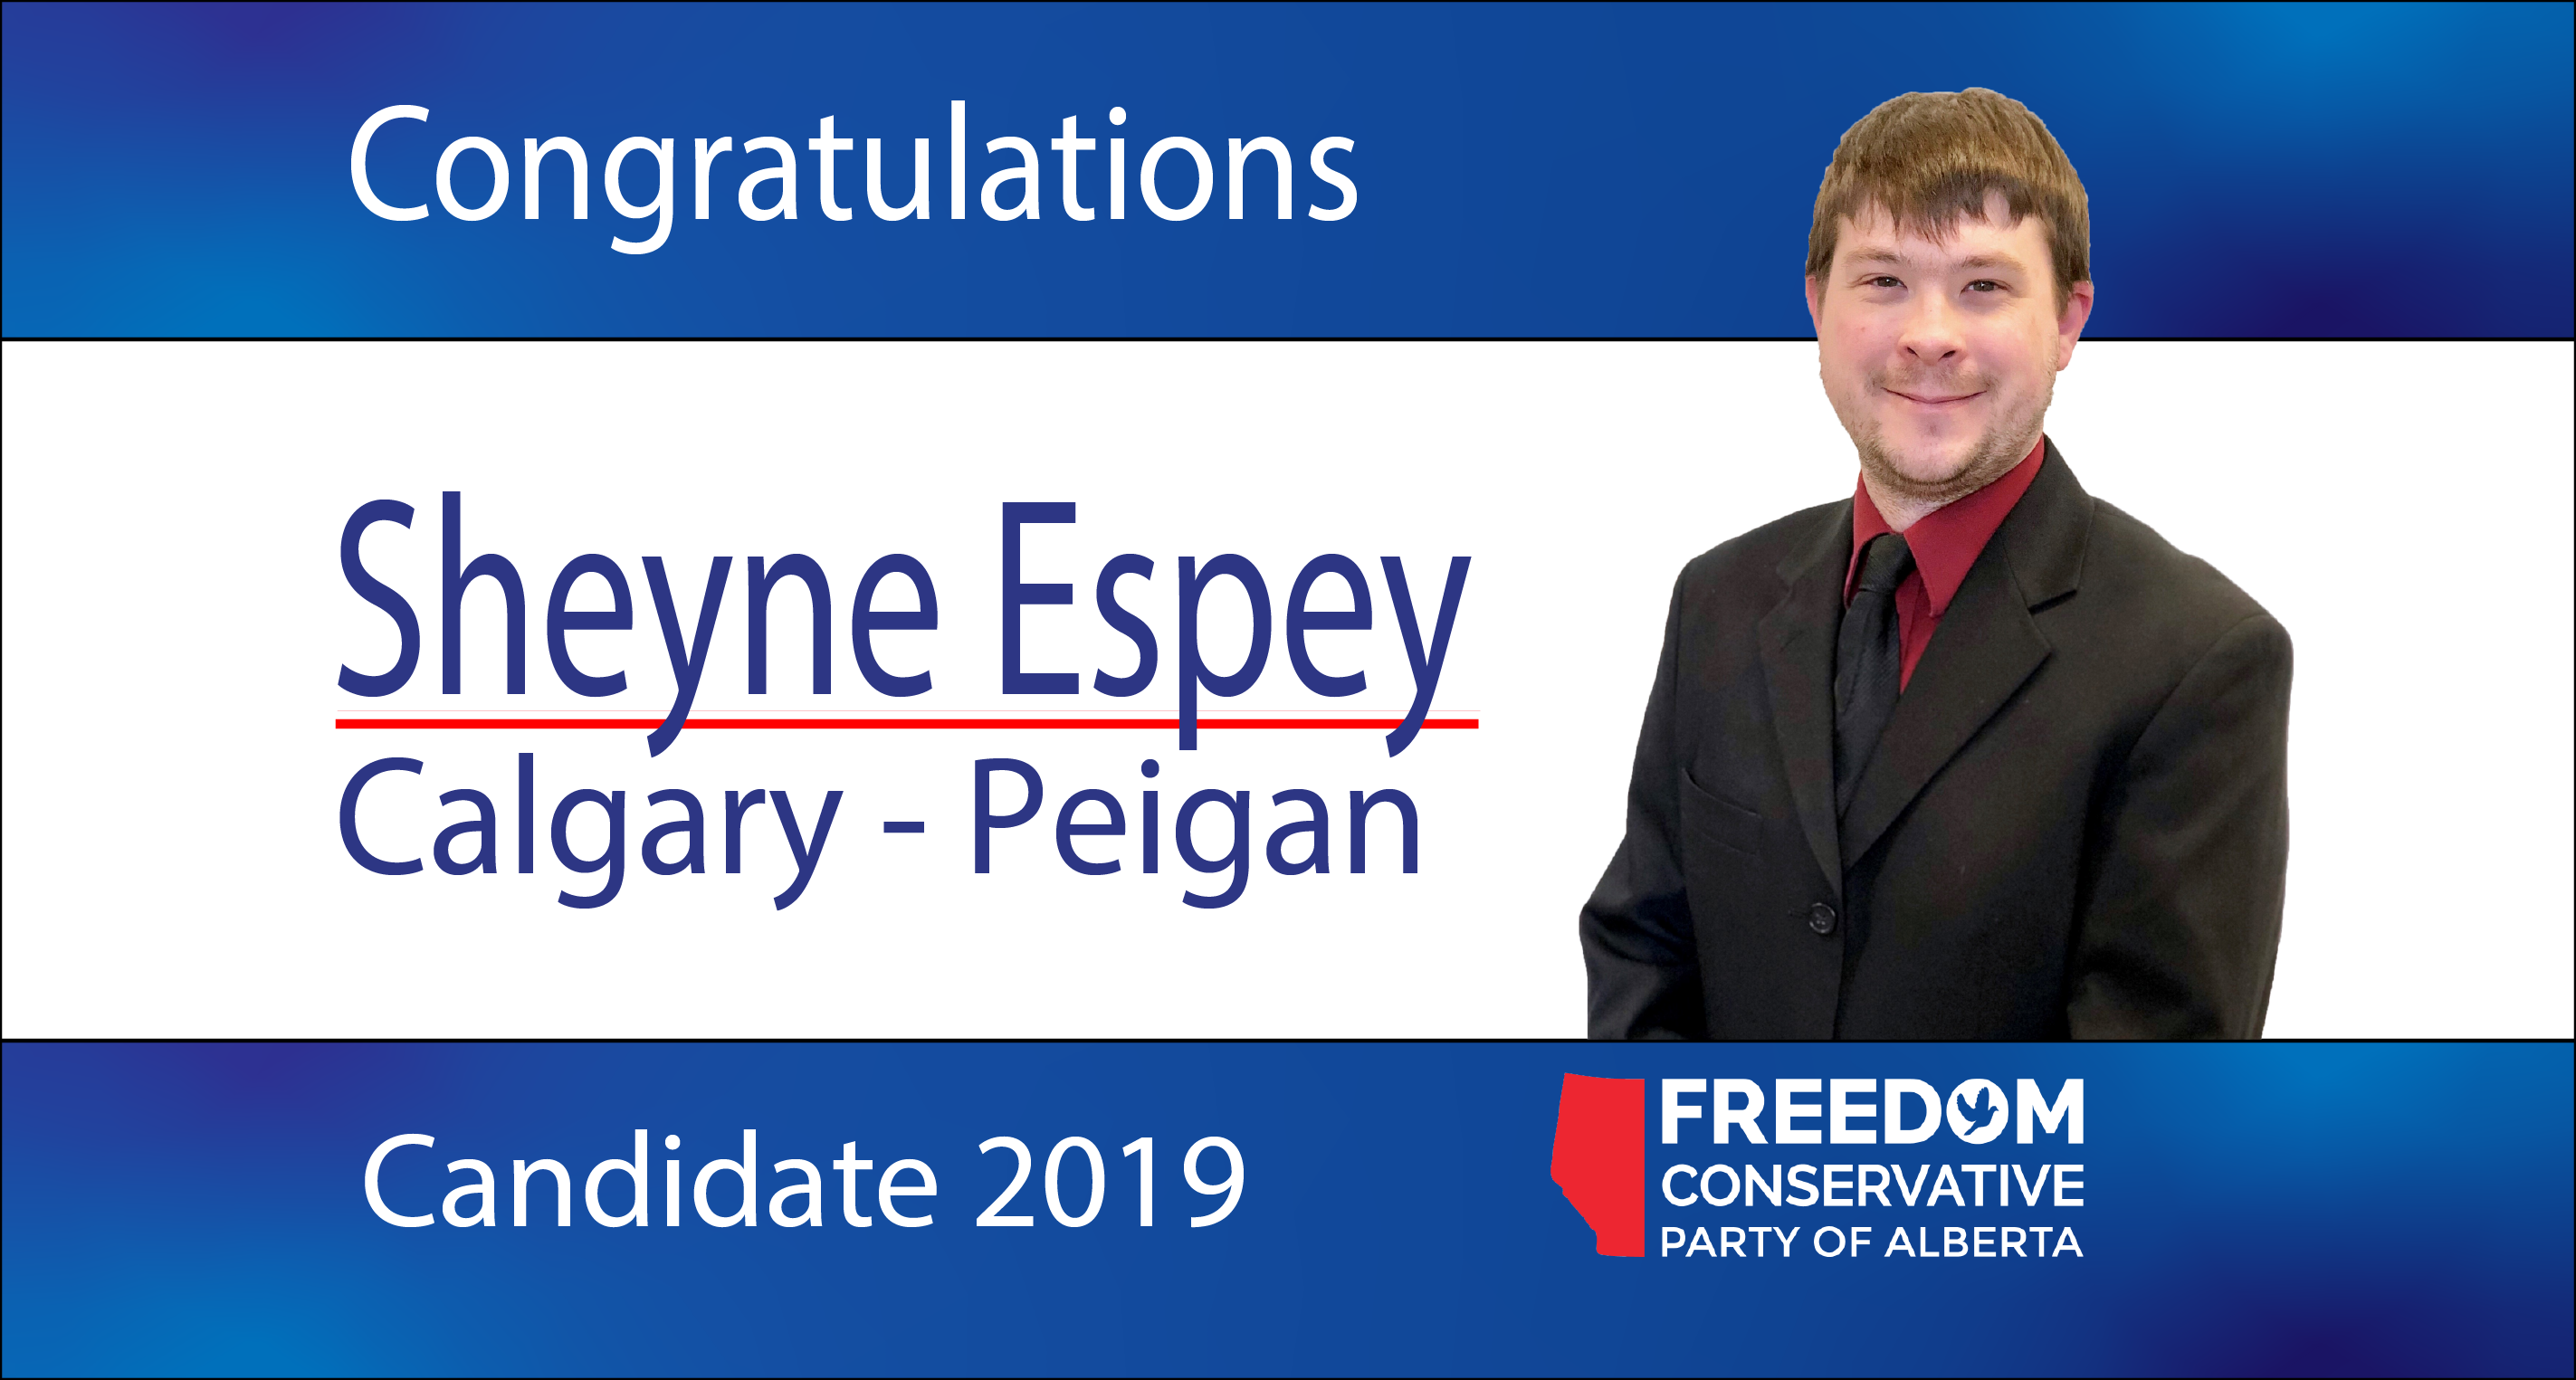 RELEASE: Sheyne Espey Nominated as FCP Candidate for Calgary-Peigan